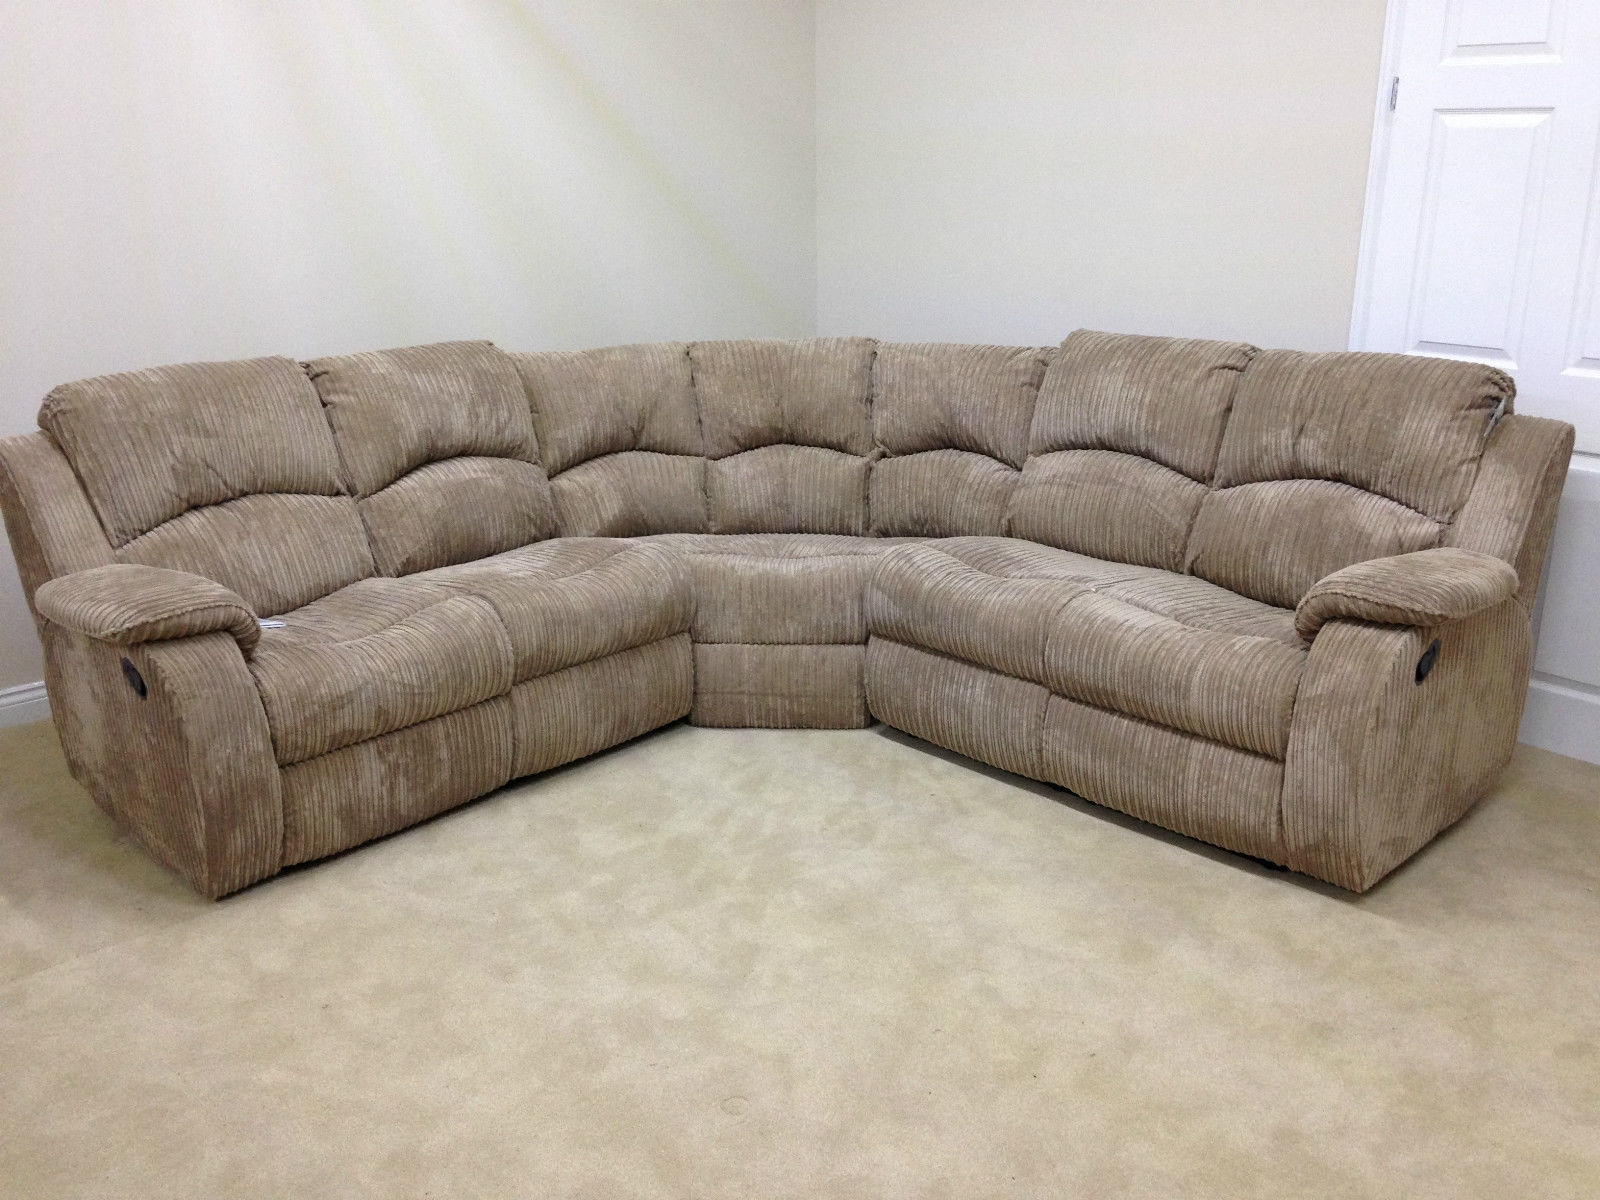 Cheap Sectional Sofas Uk Hereo Sofa Intended For Cheap Corner Sofas (Image 2 of 15)